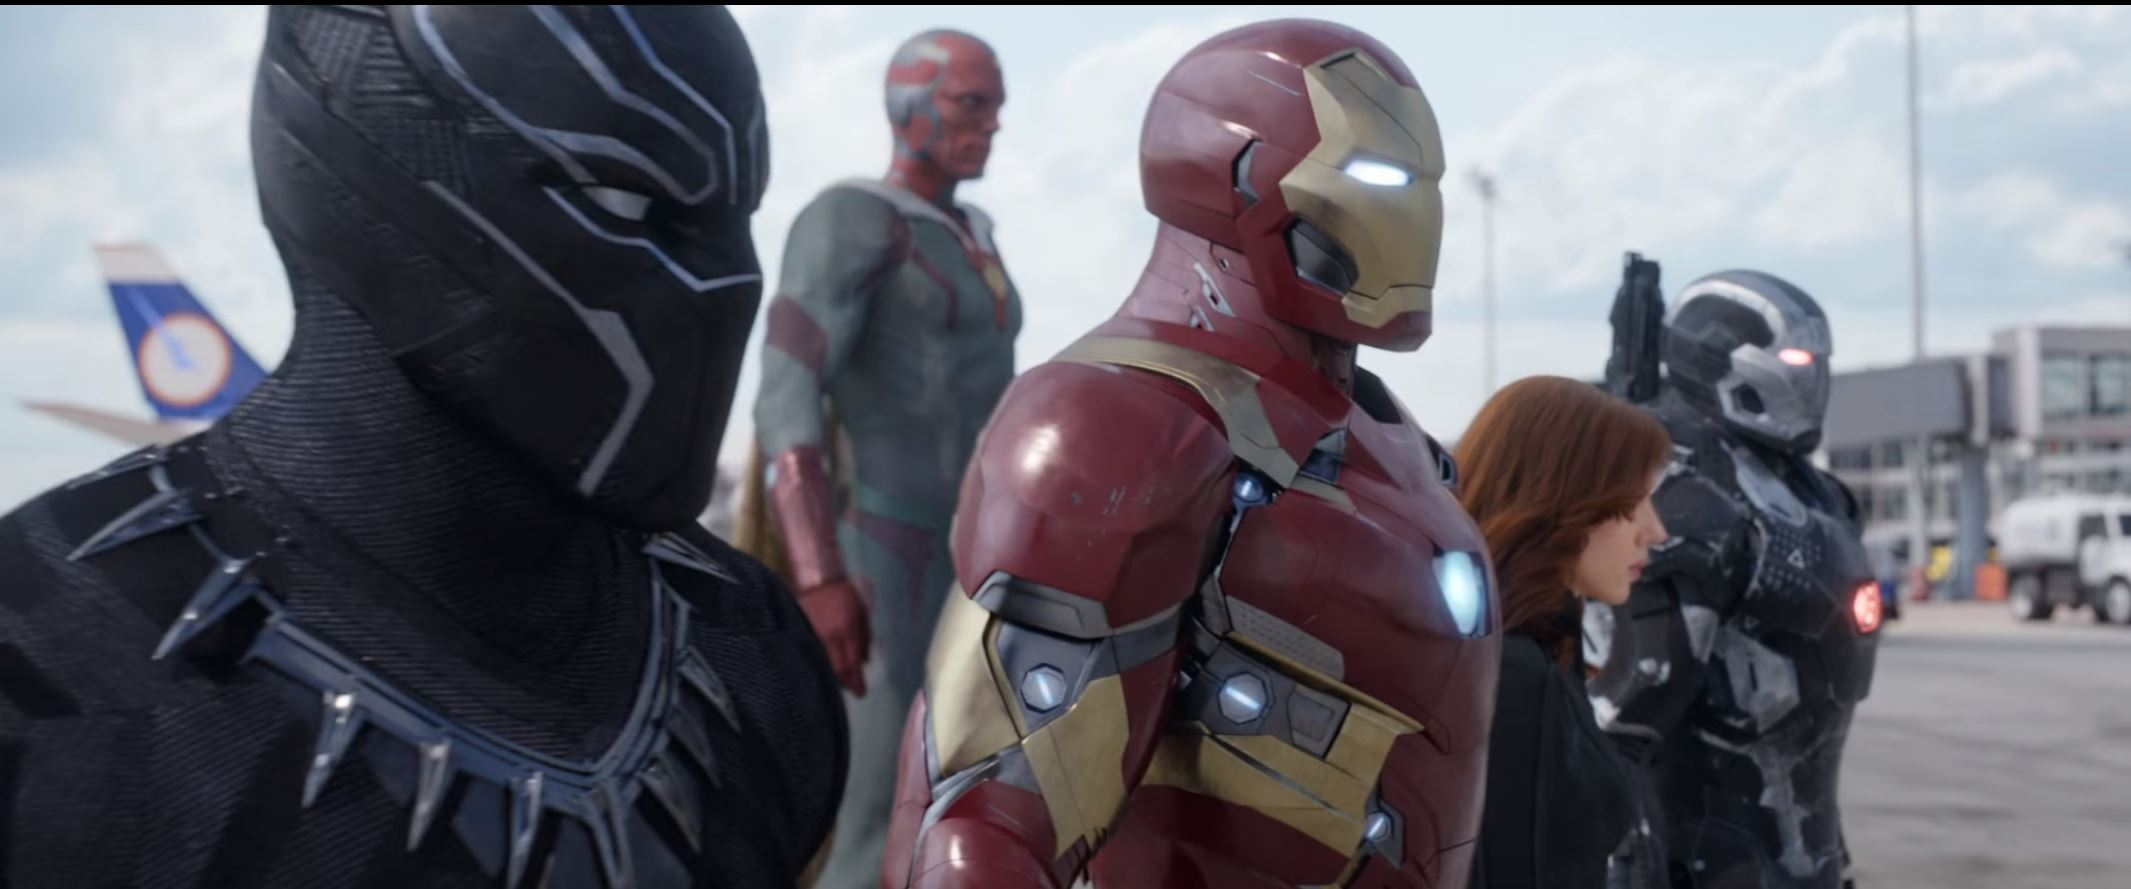 Soon The Fight Will Begin: New TV Spot for Marvel's Captain America: Civil War